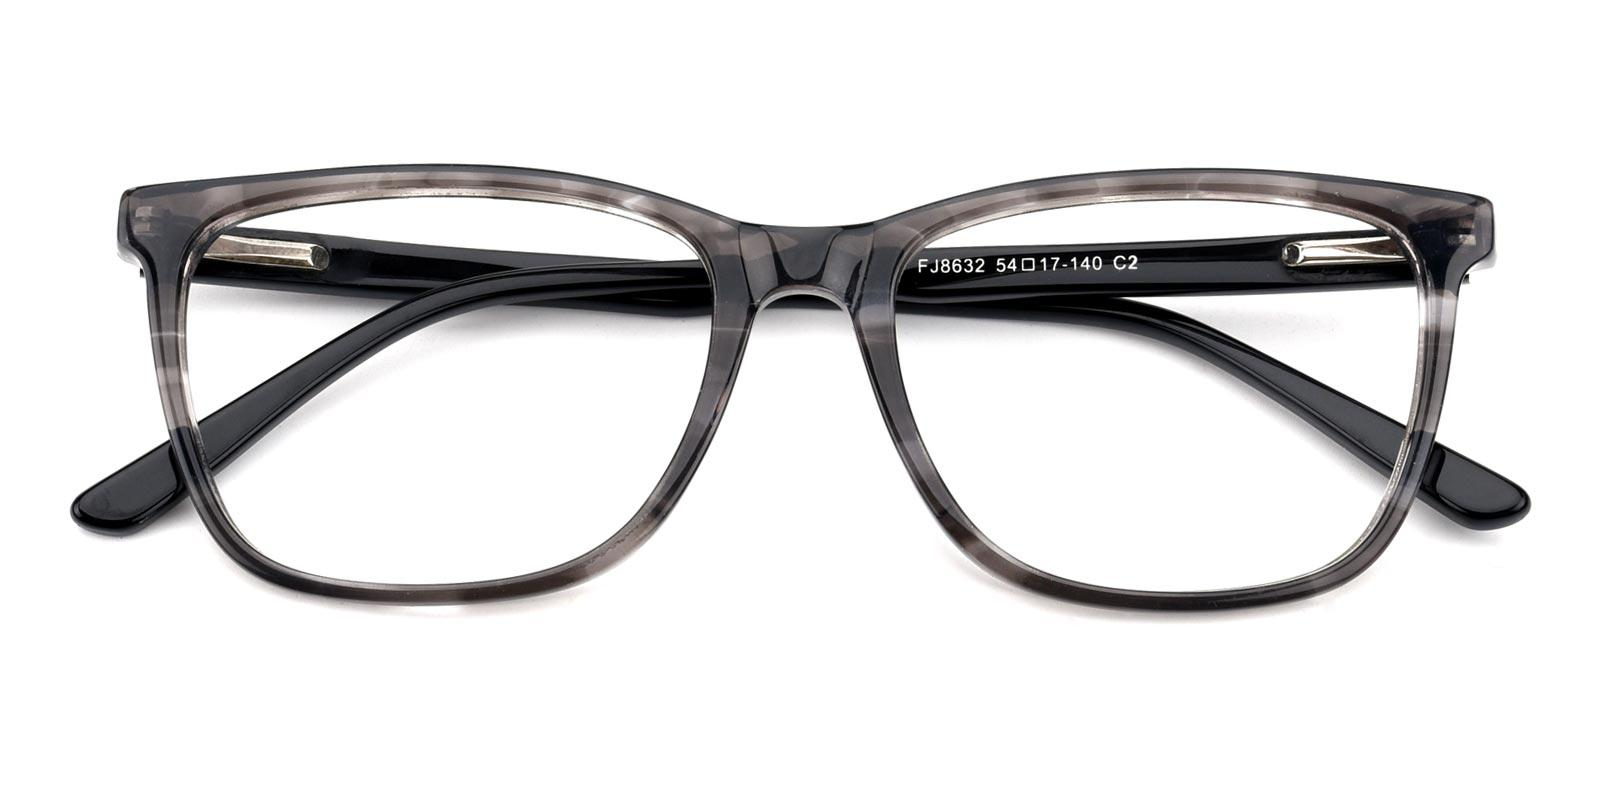 Genter-Gray-Square-Acetate-Eyeglasses-detail